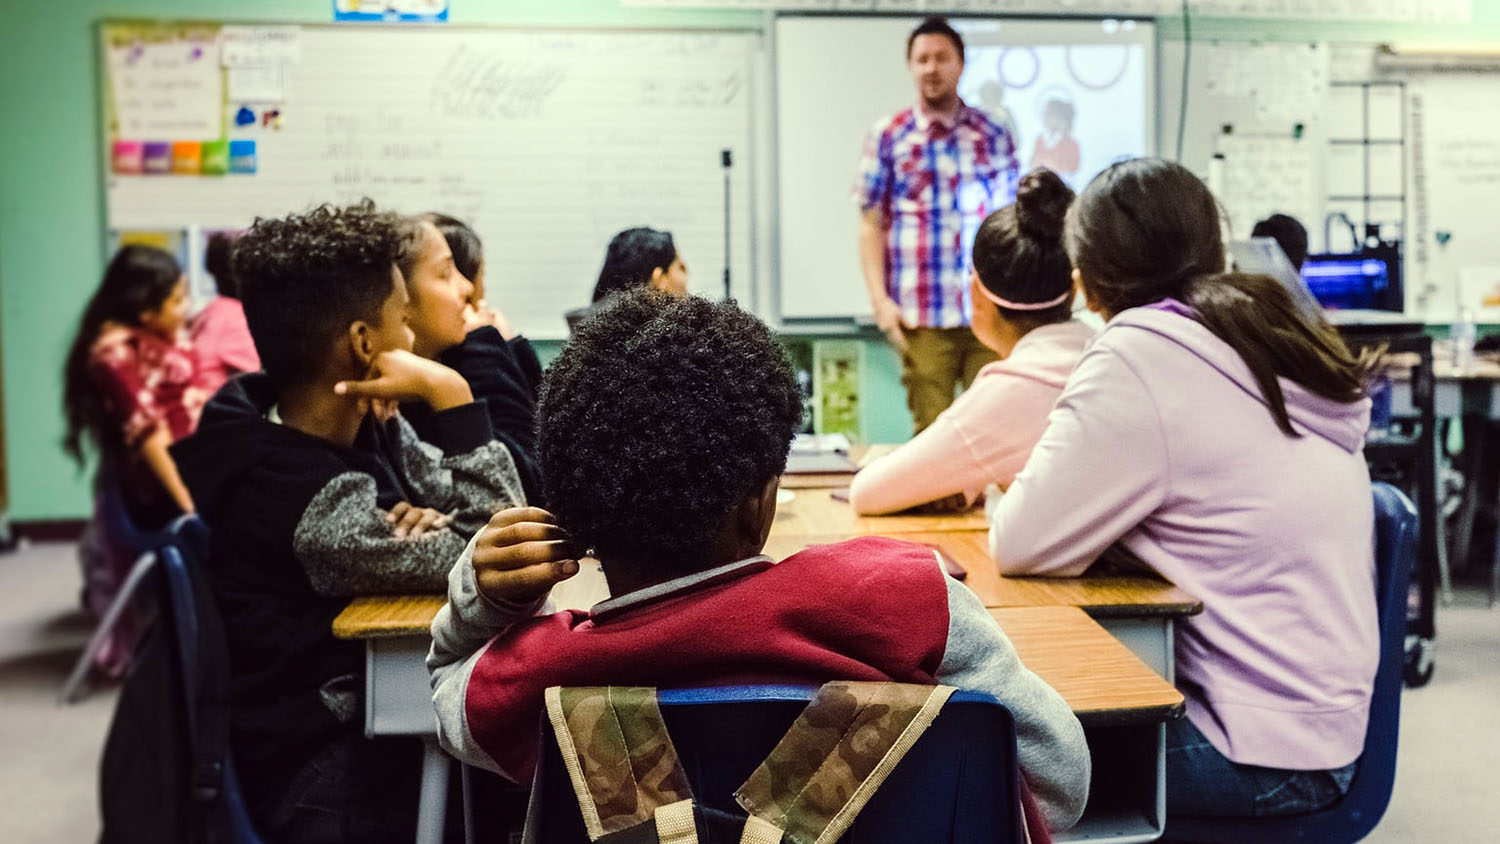 A multicultural mix of middle school students listen to a teacher in a classroom.